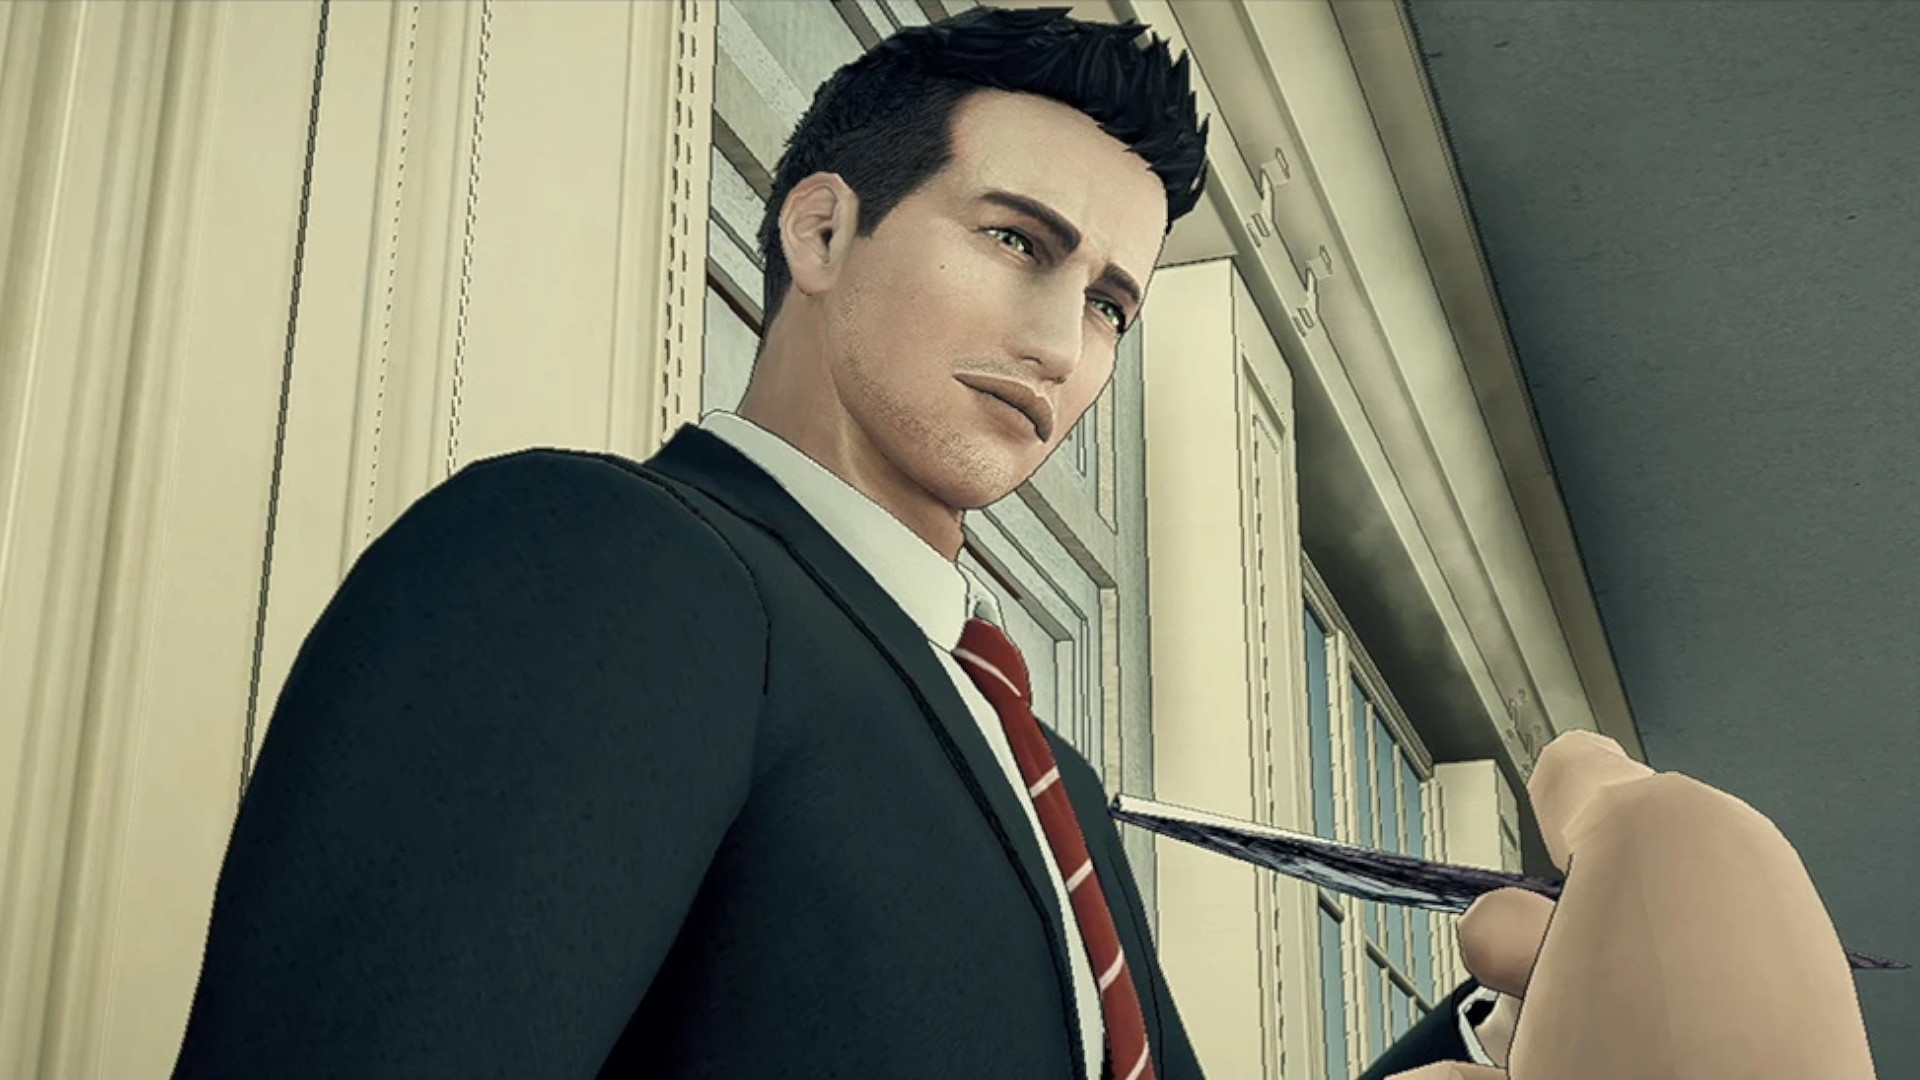 Finally, Deadly Premonition 2 is coming to a platform powerful enough to handle it